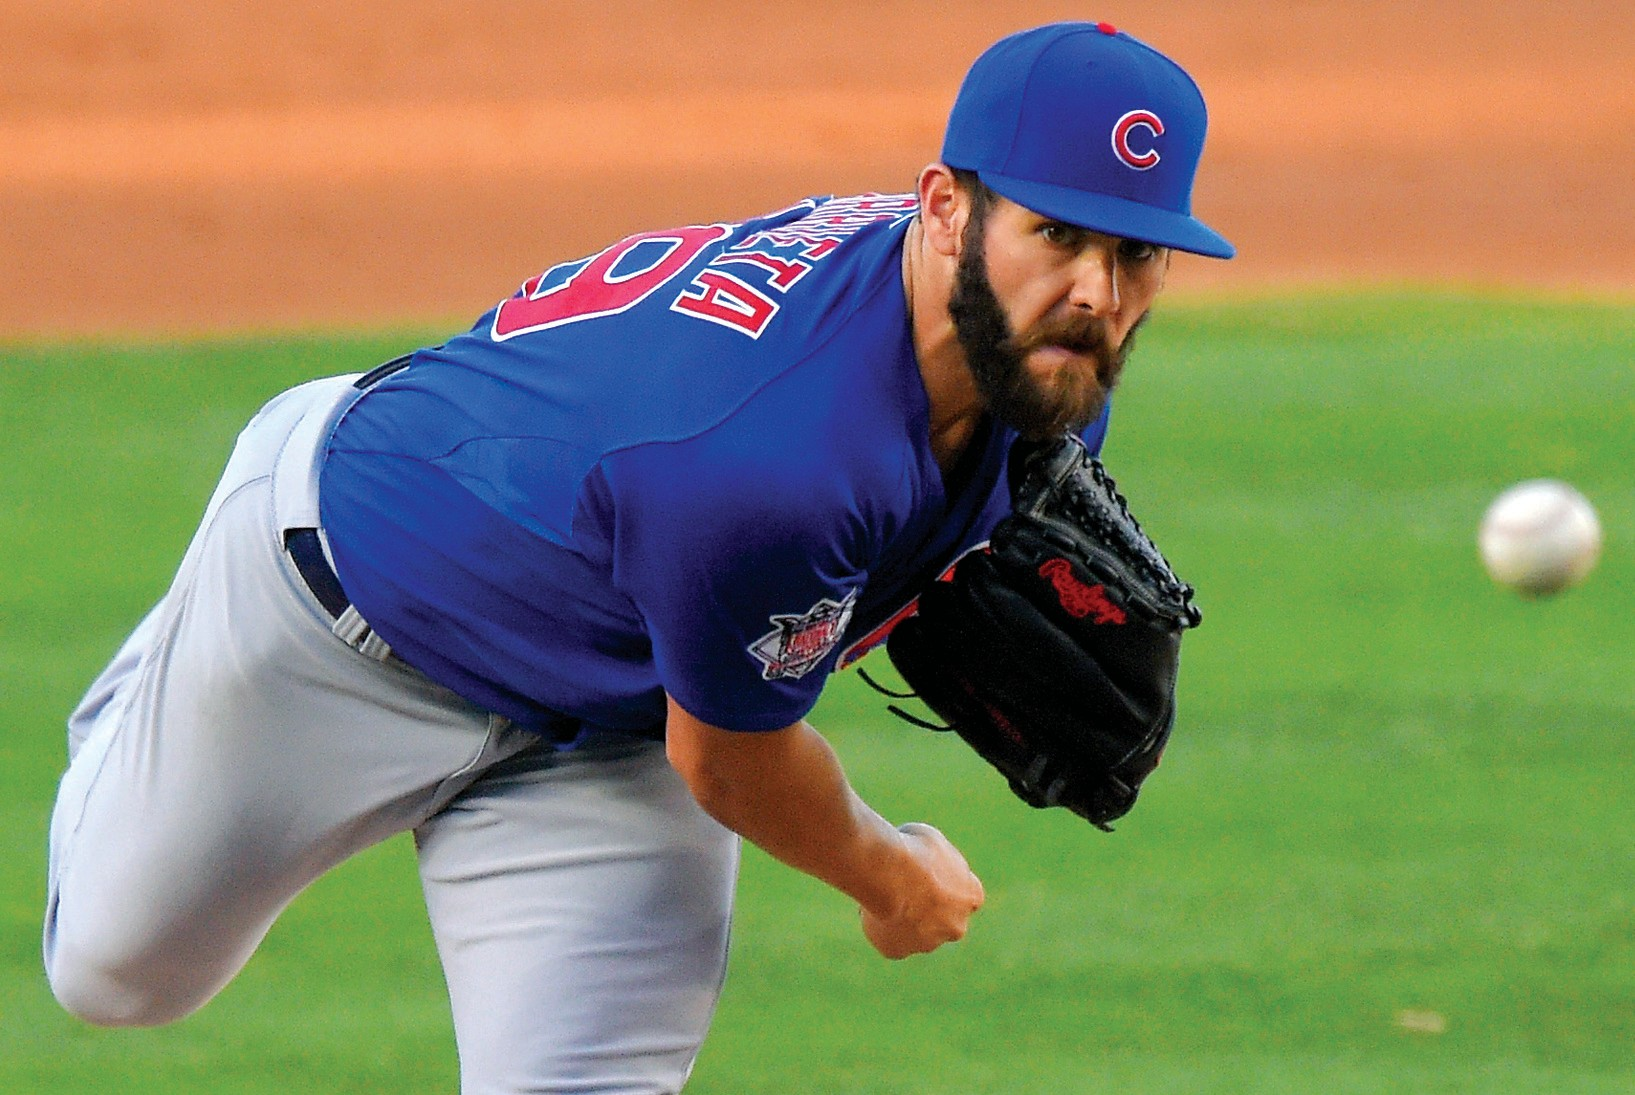 Chicago Cubs starting pitcher Jake Arrieta throws to the plate during the second inning of a game against the Los Angeles Dodgers, Sunday. Arrieta tossed a no-hitter as the Cubs beat the Dodgers, 2-0.